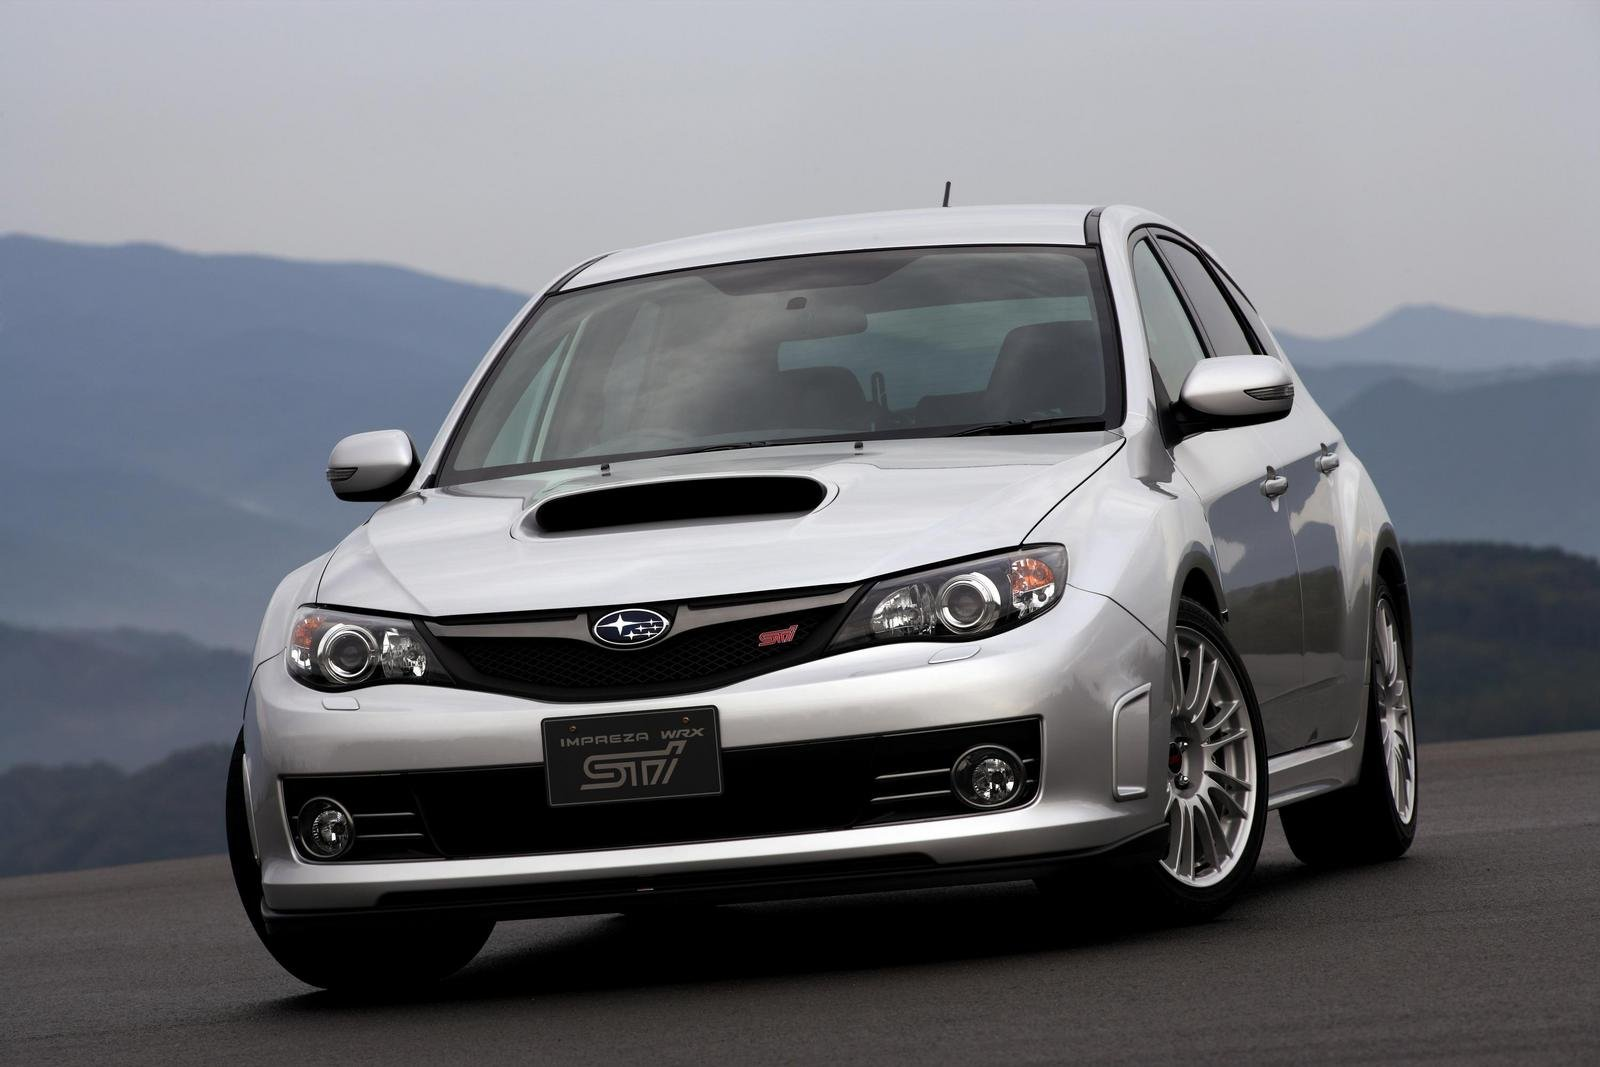 subaru impreza wrx sti makes us debut priced under 35 000 news gallery top speed. Black Bedroom Furniture Sets. Home Design Ideas